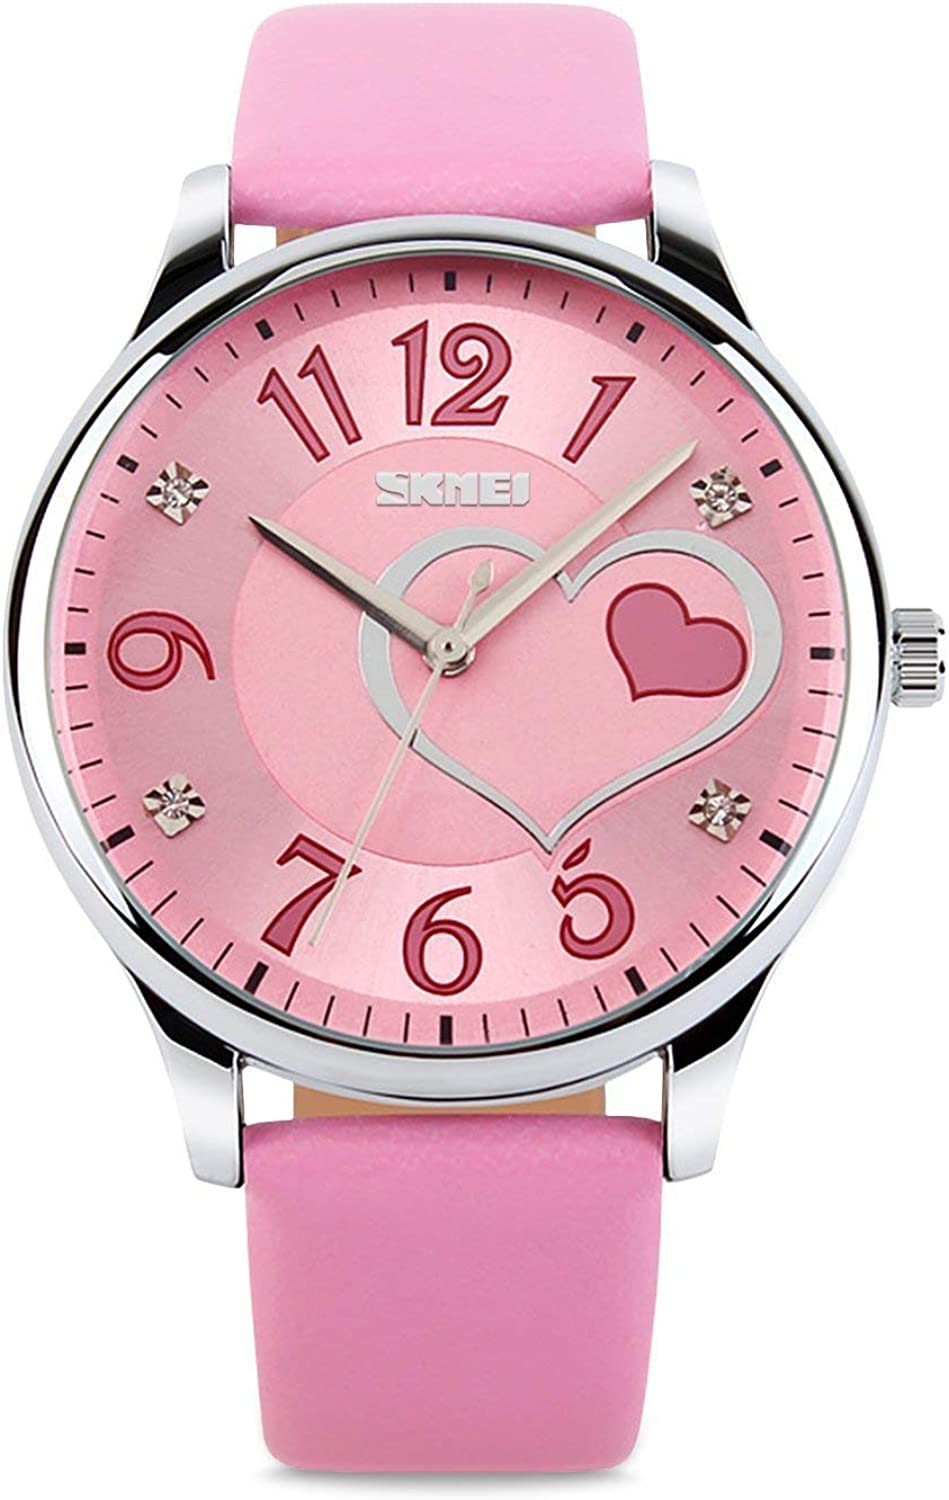 IJAHWRS Girls Analog Watch, Fashion Lady Quartz Wrist Watch Leather Strap Big Face Fun Cute Watches with Lovely Heart Shape Water Resistant - Pink